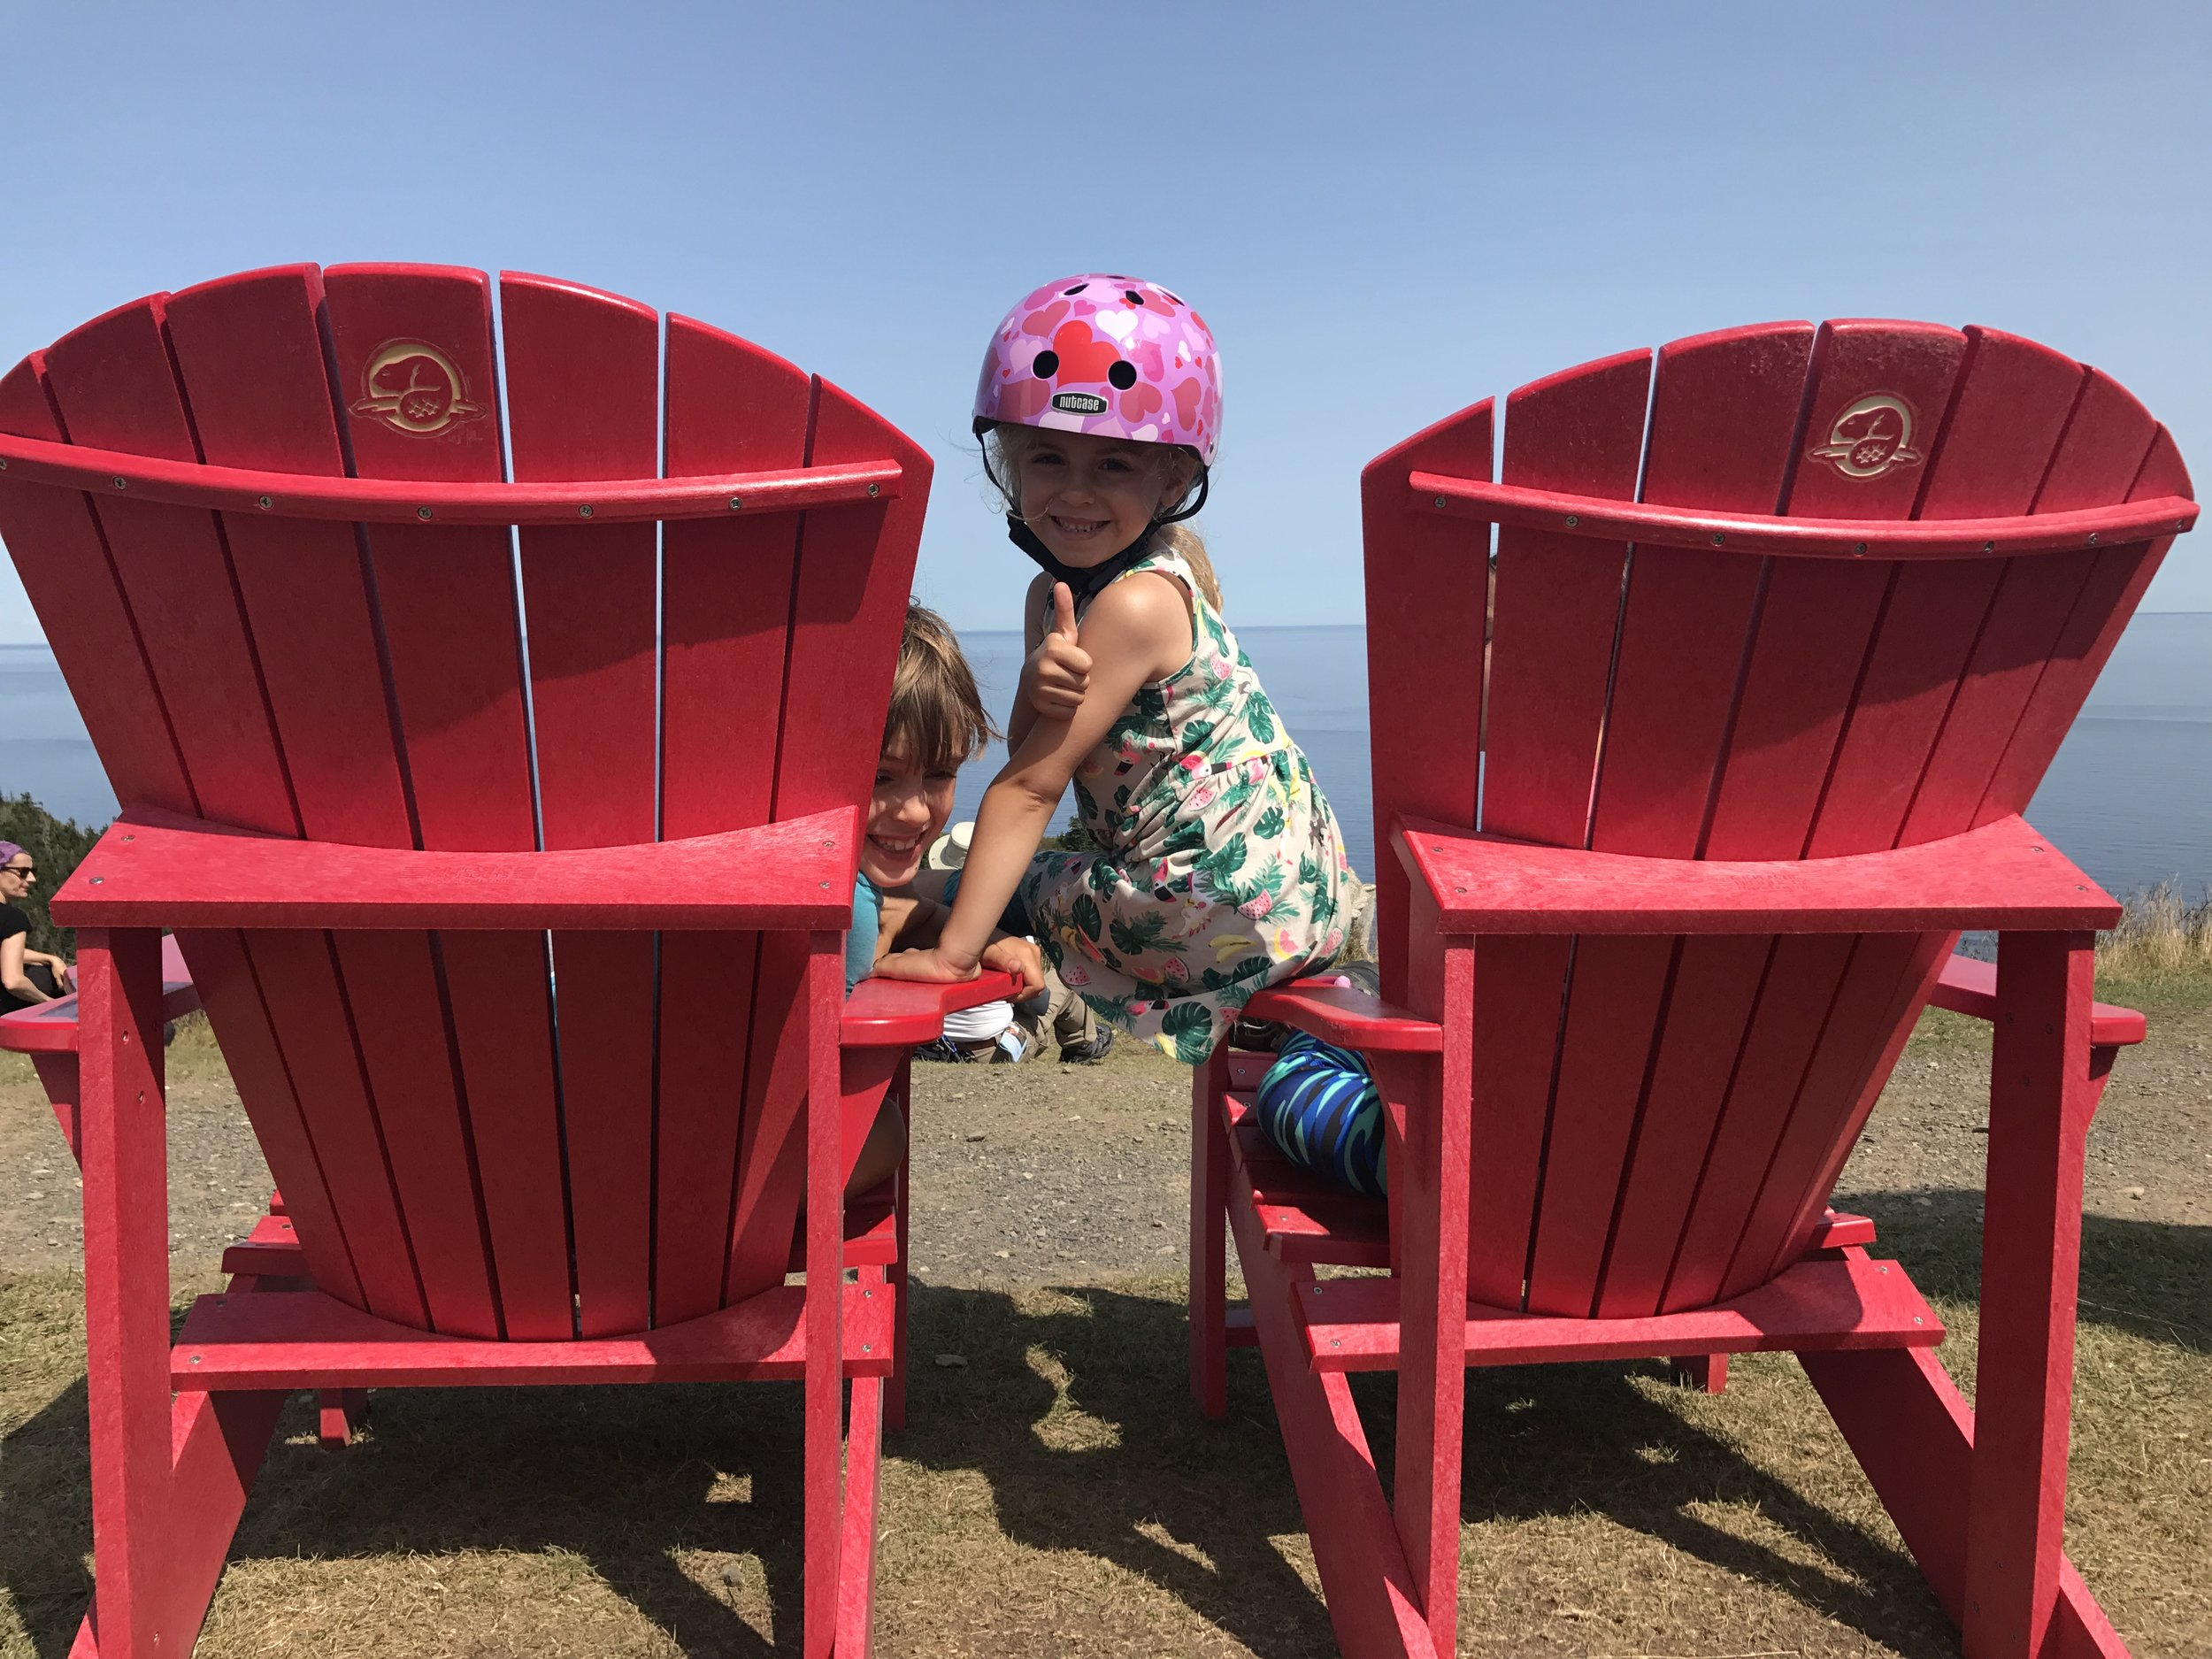 A bike and hike kinda day to find these chairs at the Cap-Gaspé lighthouse in Forillon National Park, Québec. The Gaspé Peninsula is a must see if doing Canada and this park did not disappoint.